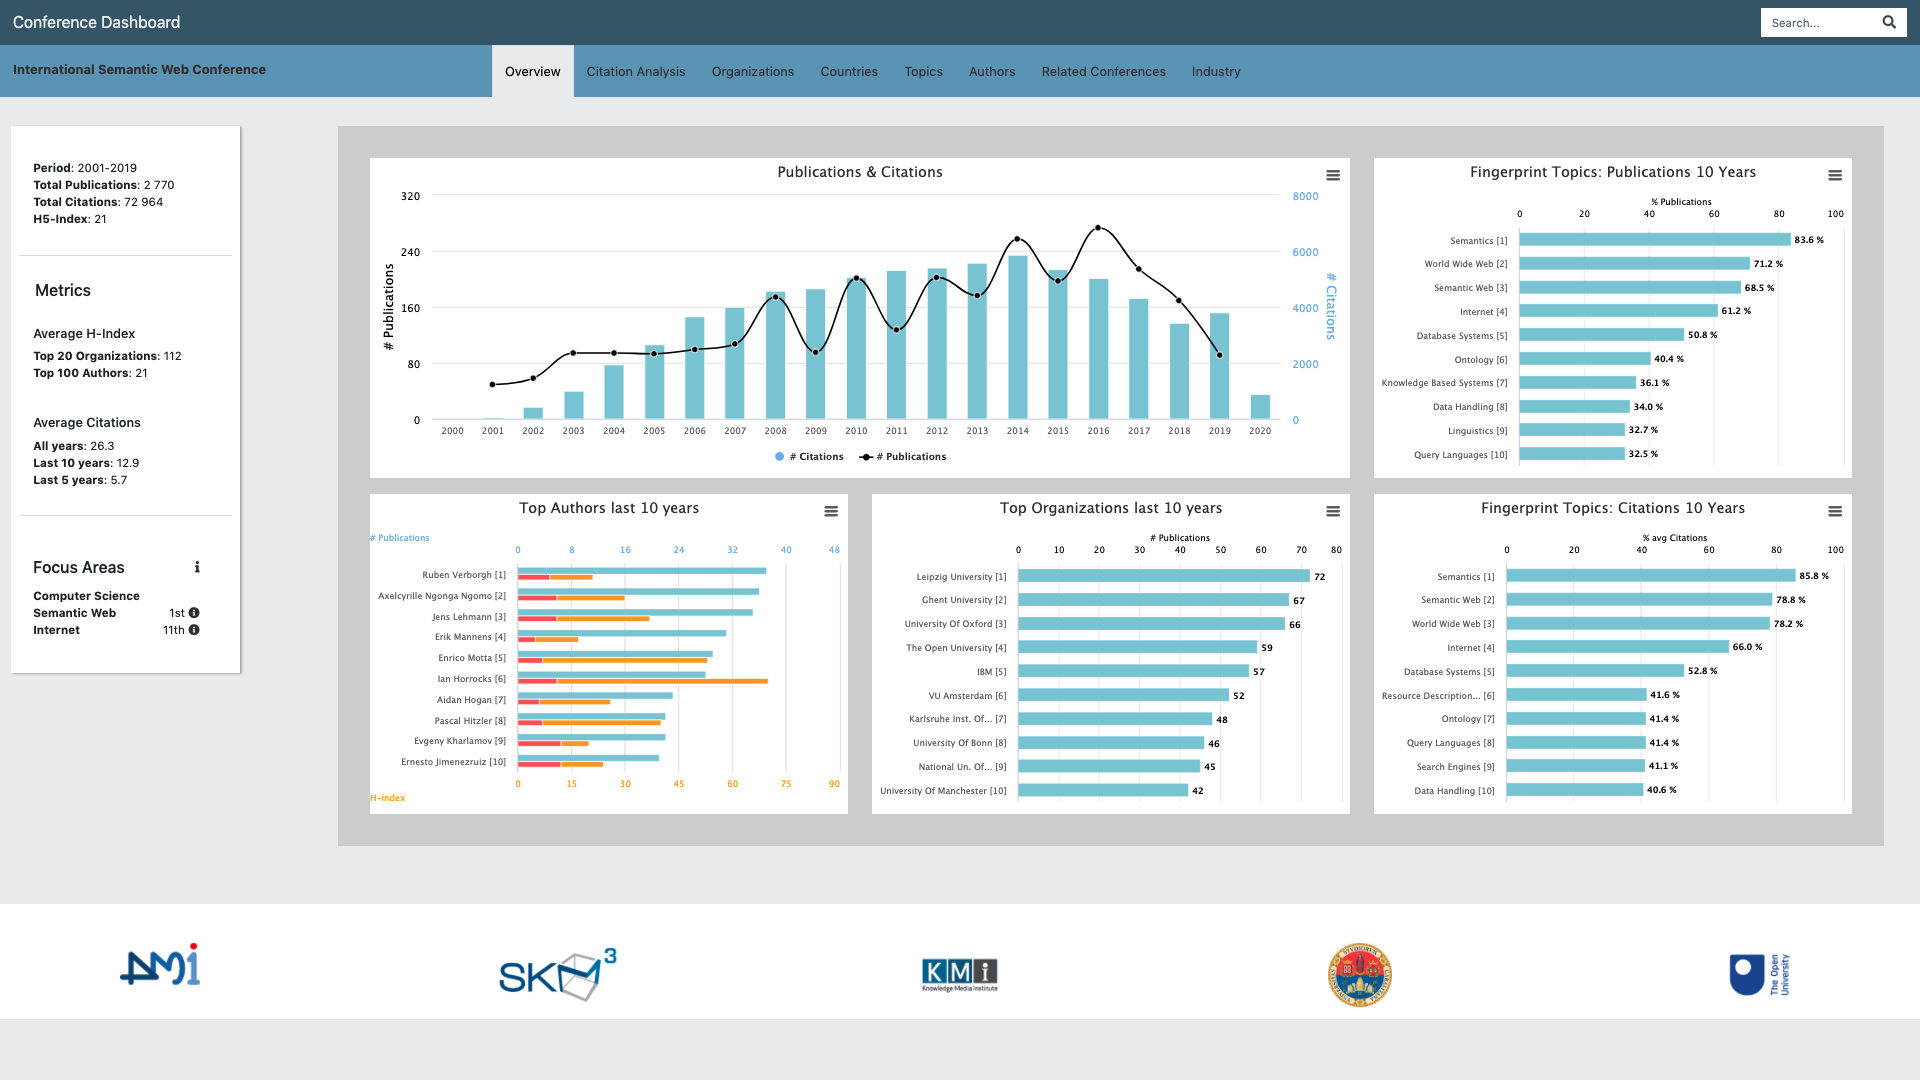 The Conference Dashboard